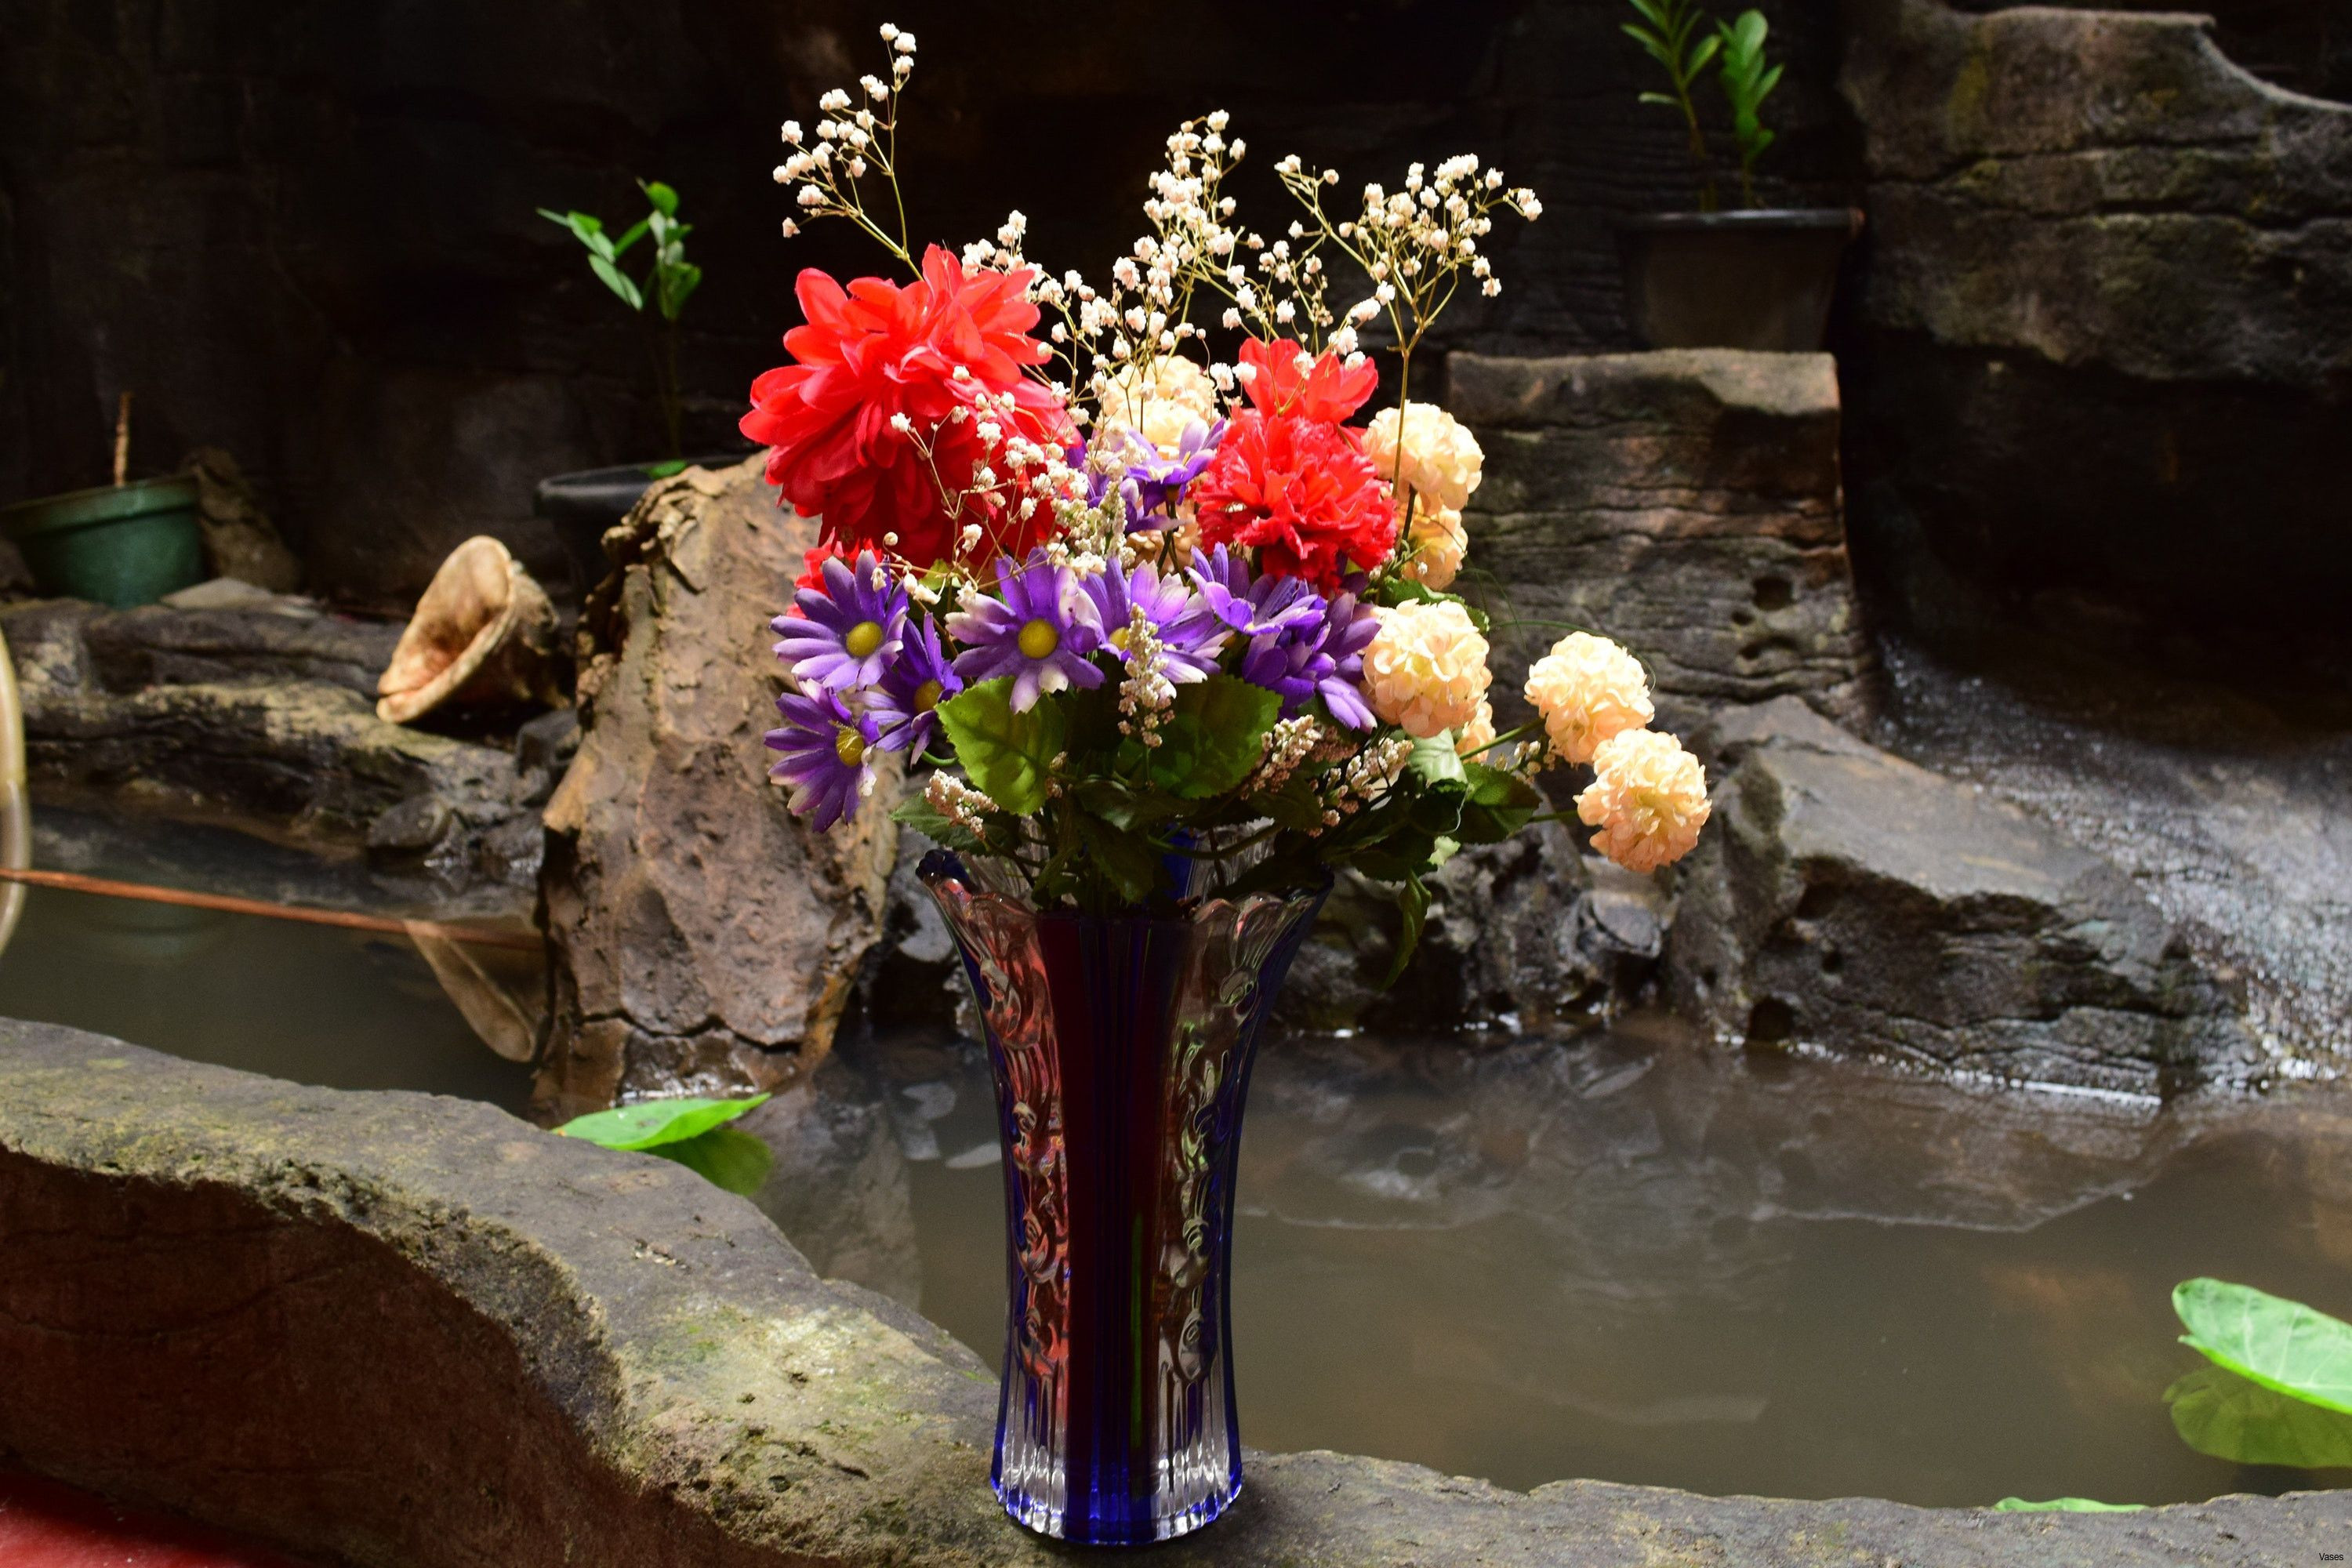 Stay In the Vase Cemetery Flowers Of 19 Gold Flower Vases the Weekly World Pertaining to Fbv Ingsoonh Vases Flowers by the Vase I 0d Sea Gold Beach oregon